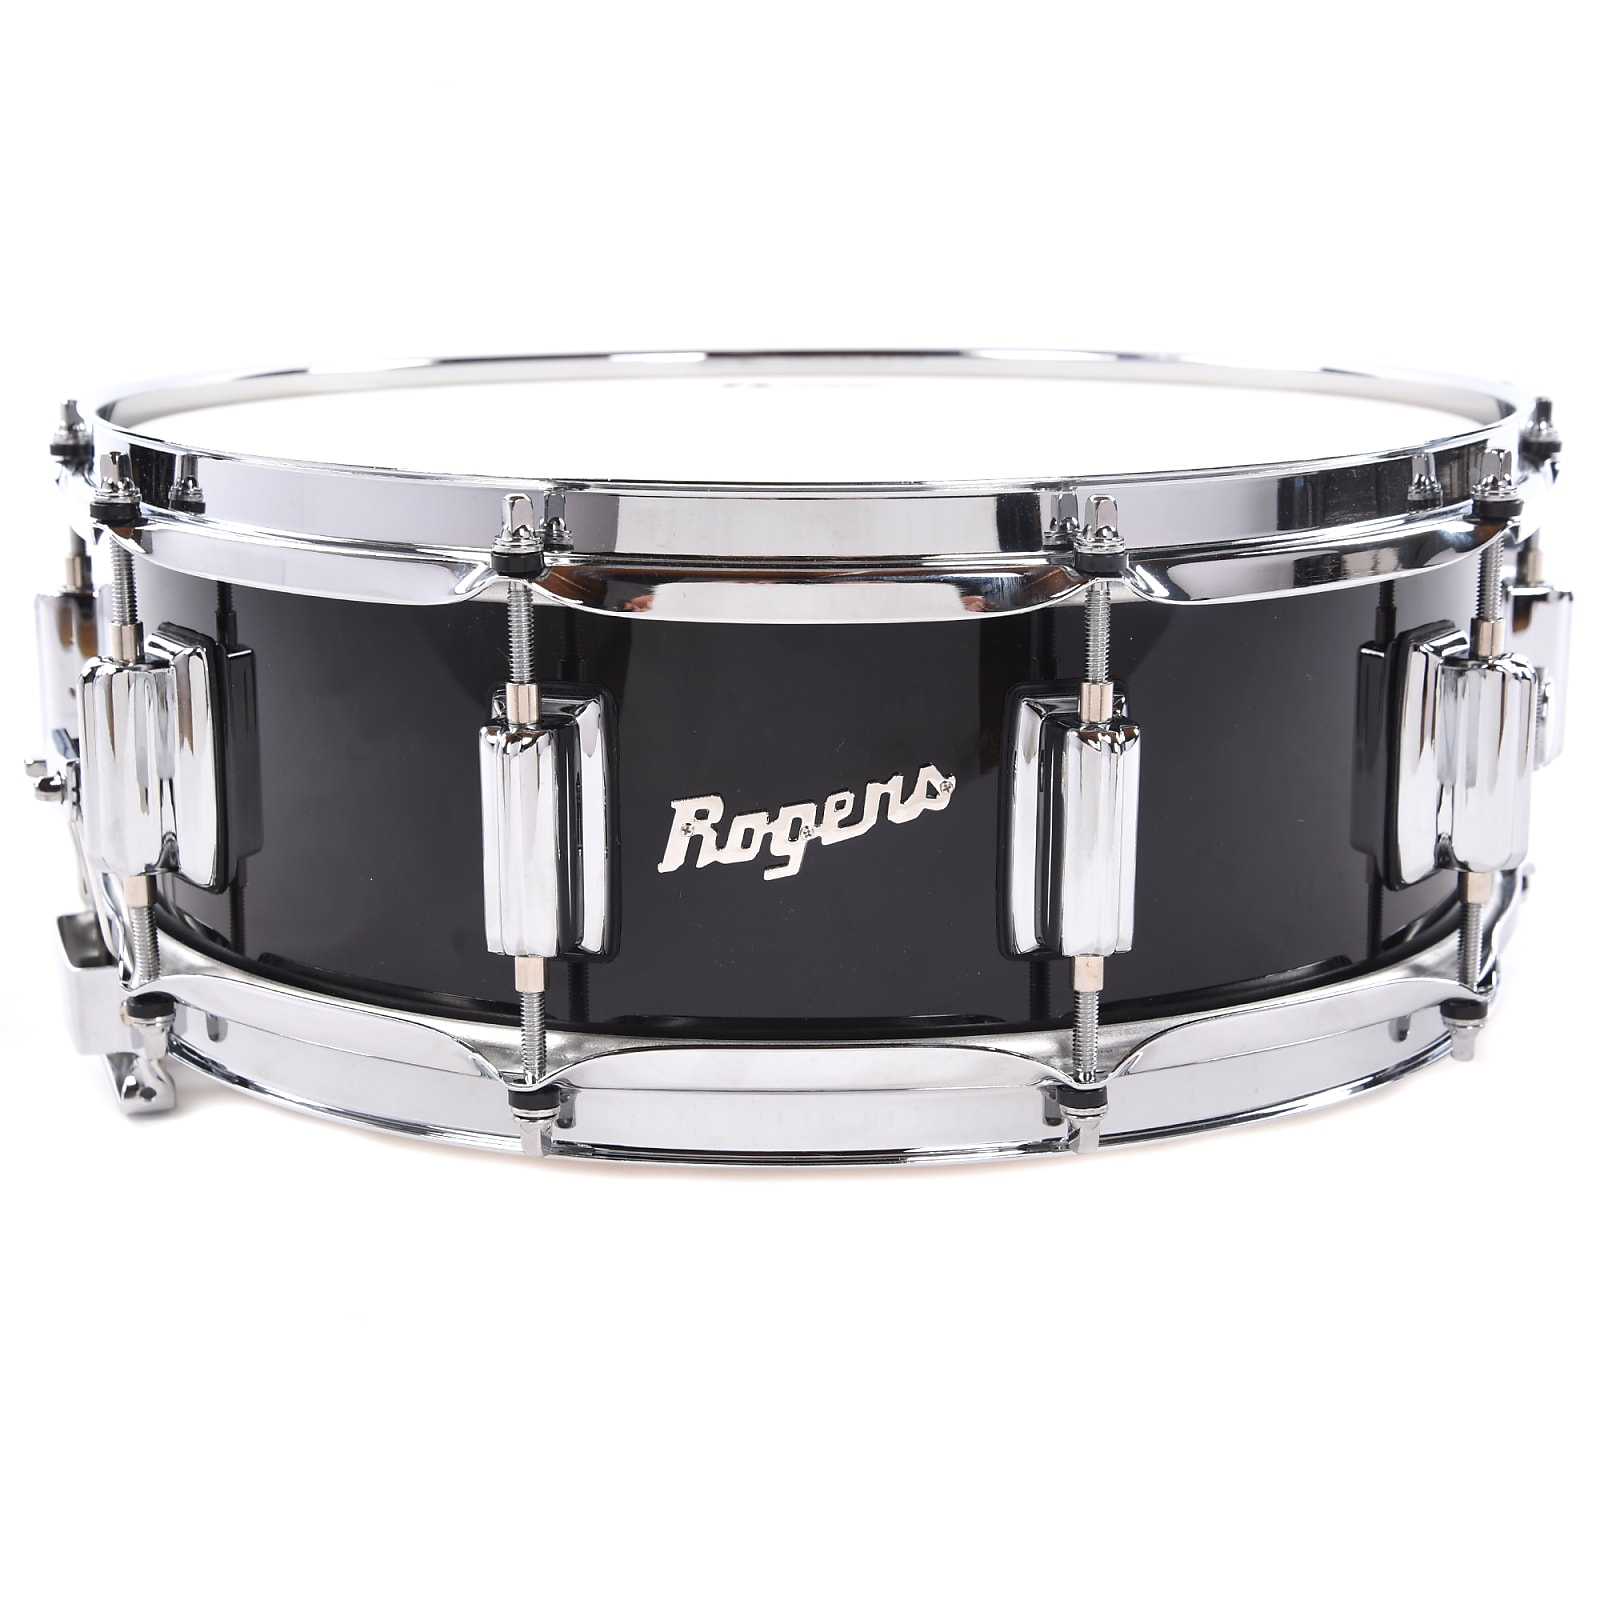 Dating Rogers dynasonic Snare